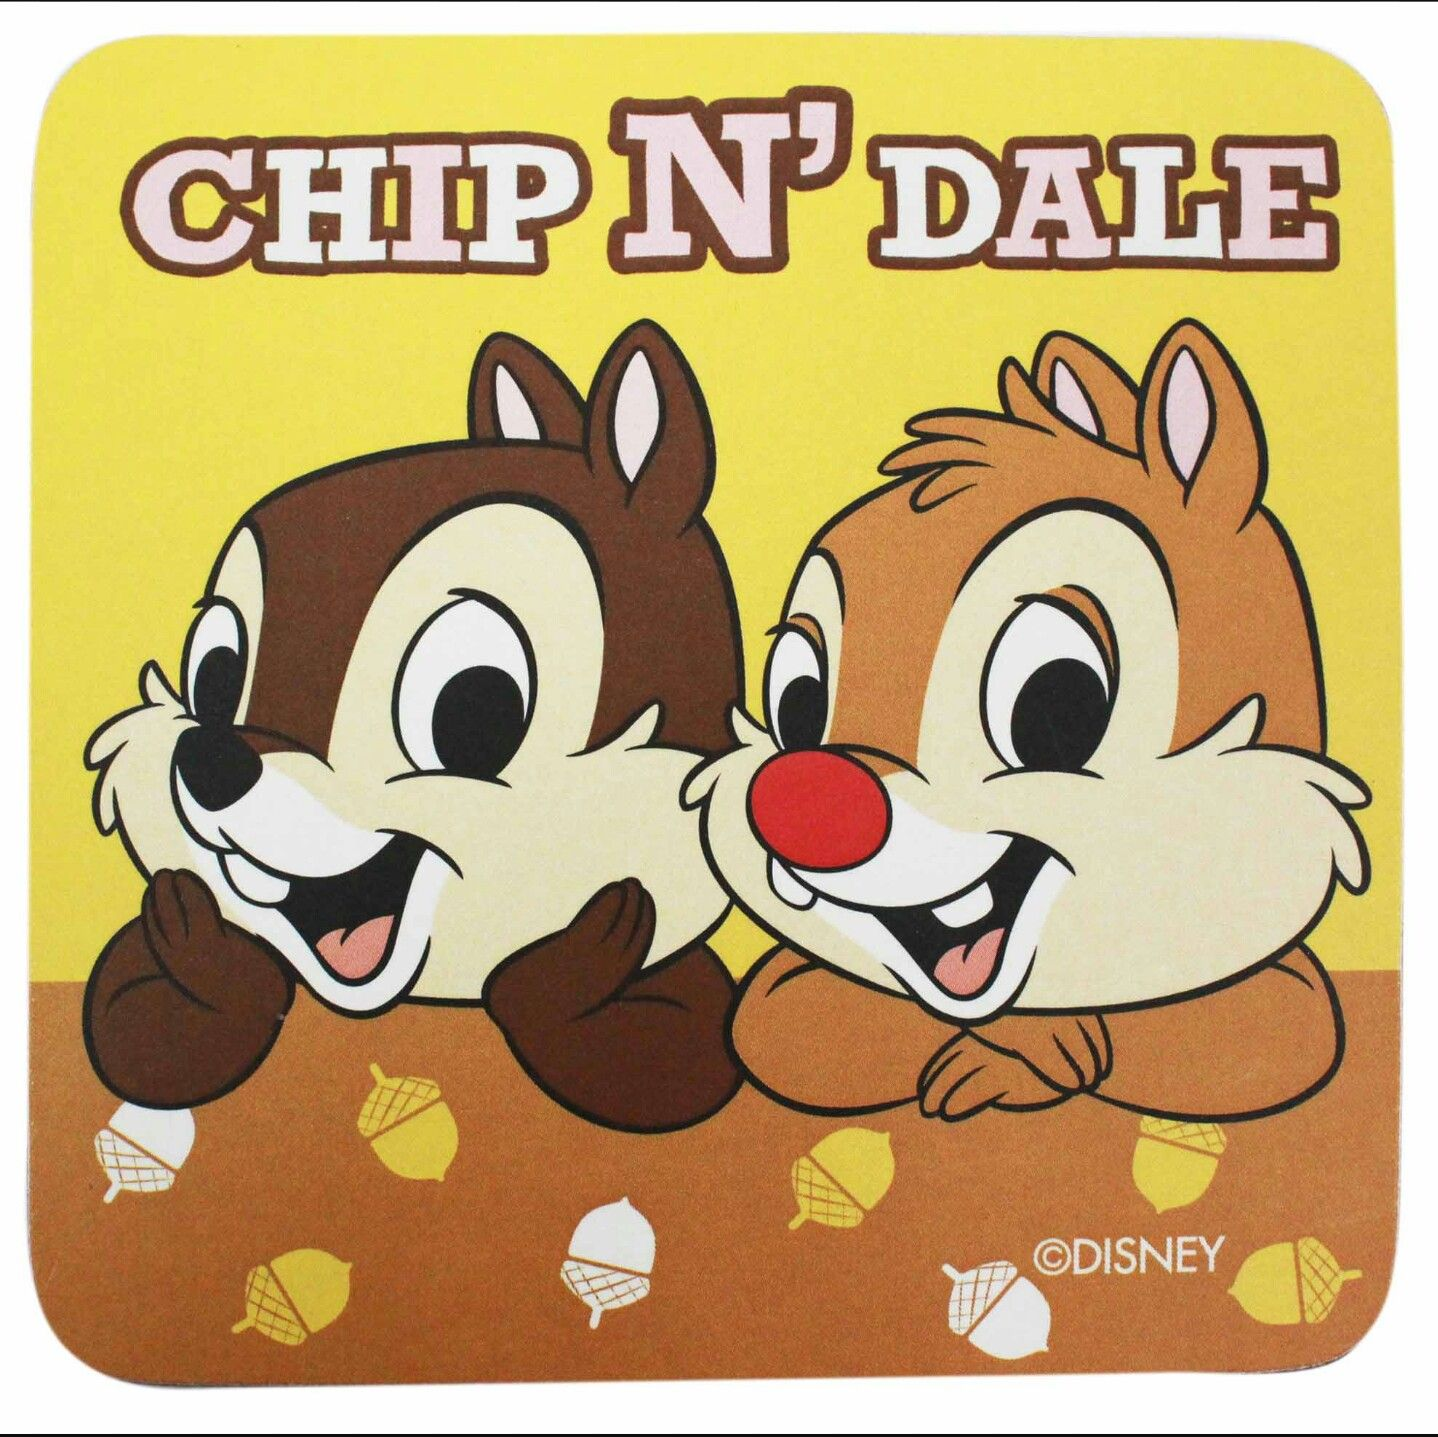 Pin by stephanie on chip n dale wallpaper pinterest - Chip n dale wallpapers free download ...